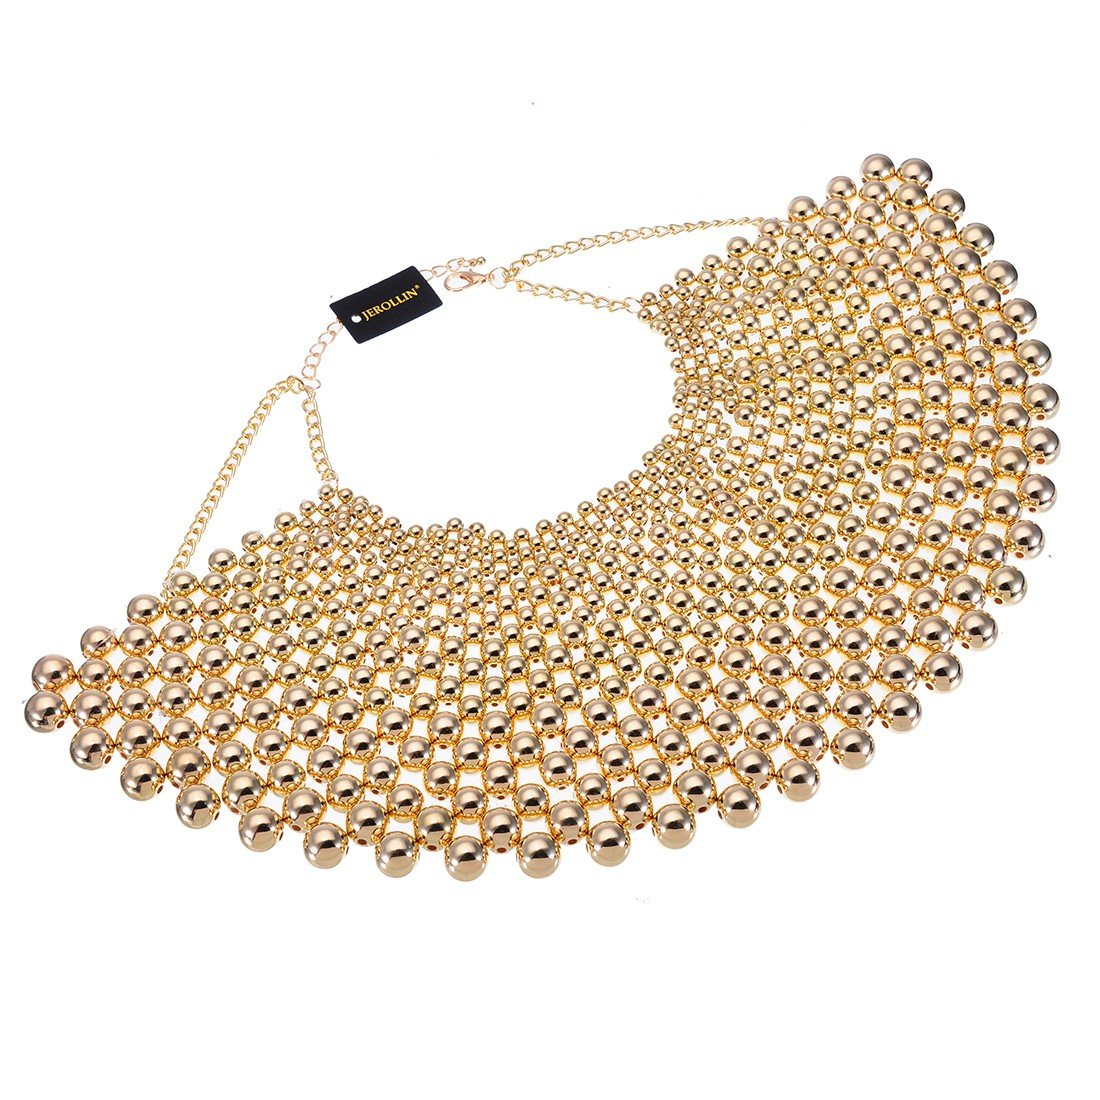 Bib Collar Necklace Chunky CCB Resin Beads Chain Choker Statement Necklace Womens Fashion Jewelry Necklace by Jerollin